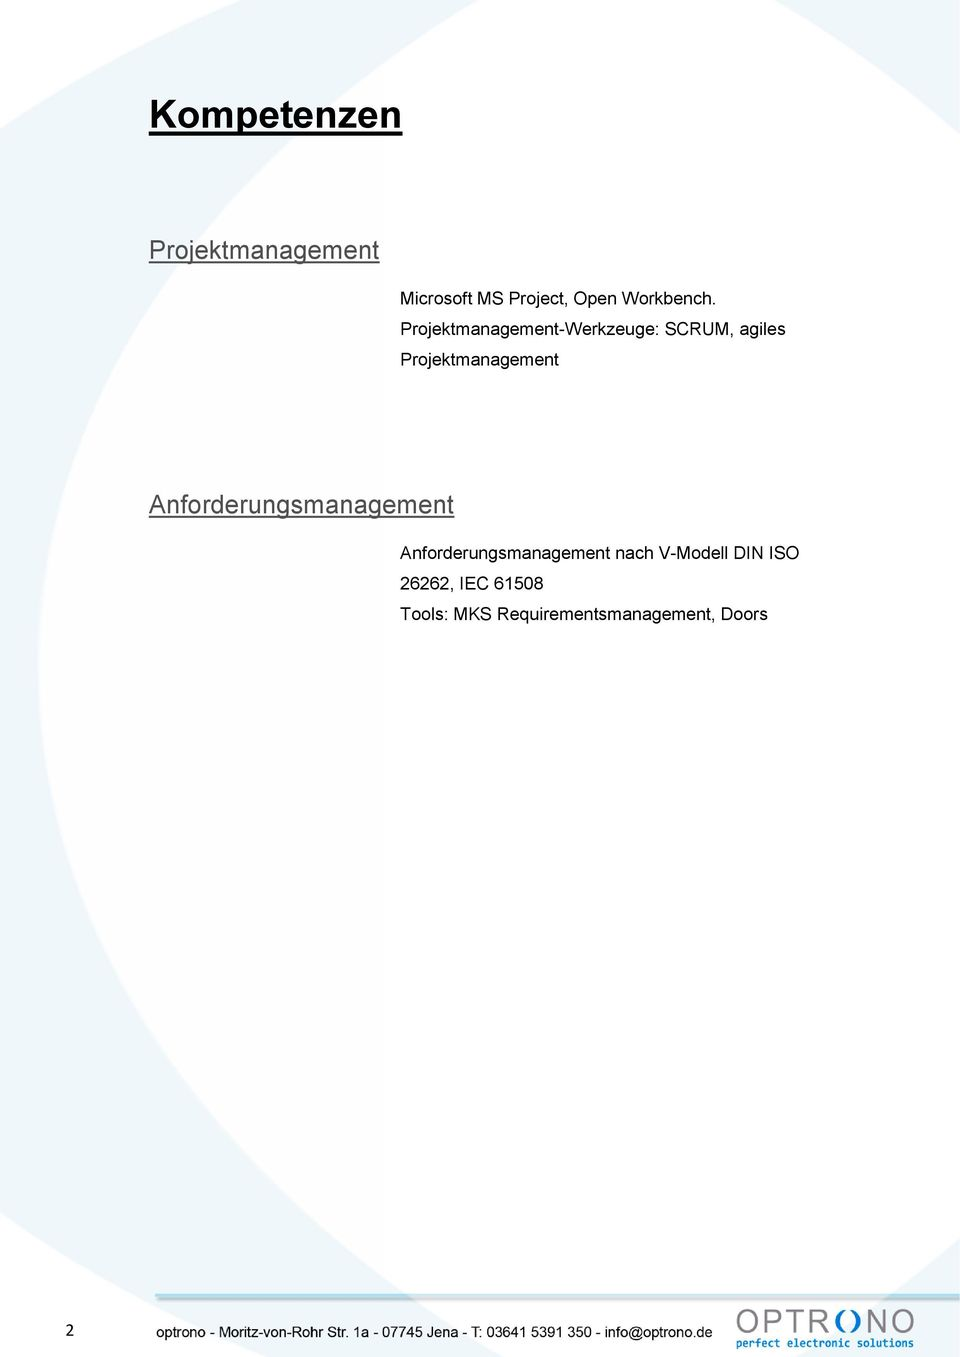 Projektmanagement-Werkzeuge: SCRUM, agiles Projektmanagement